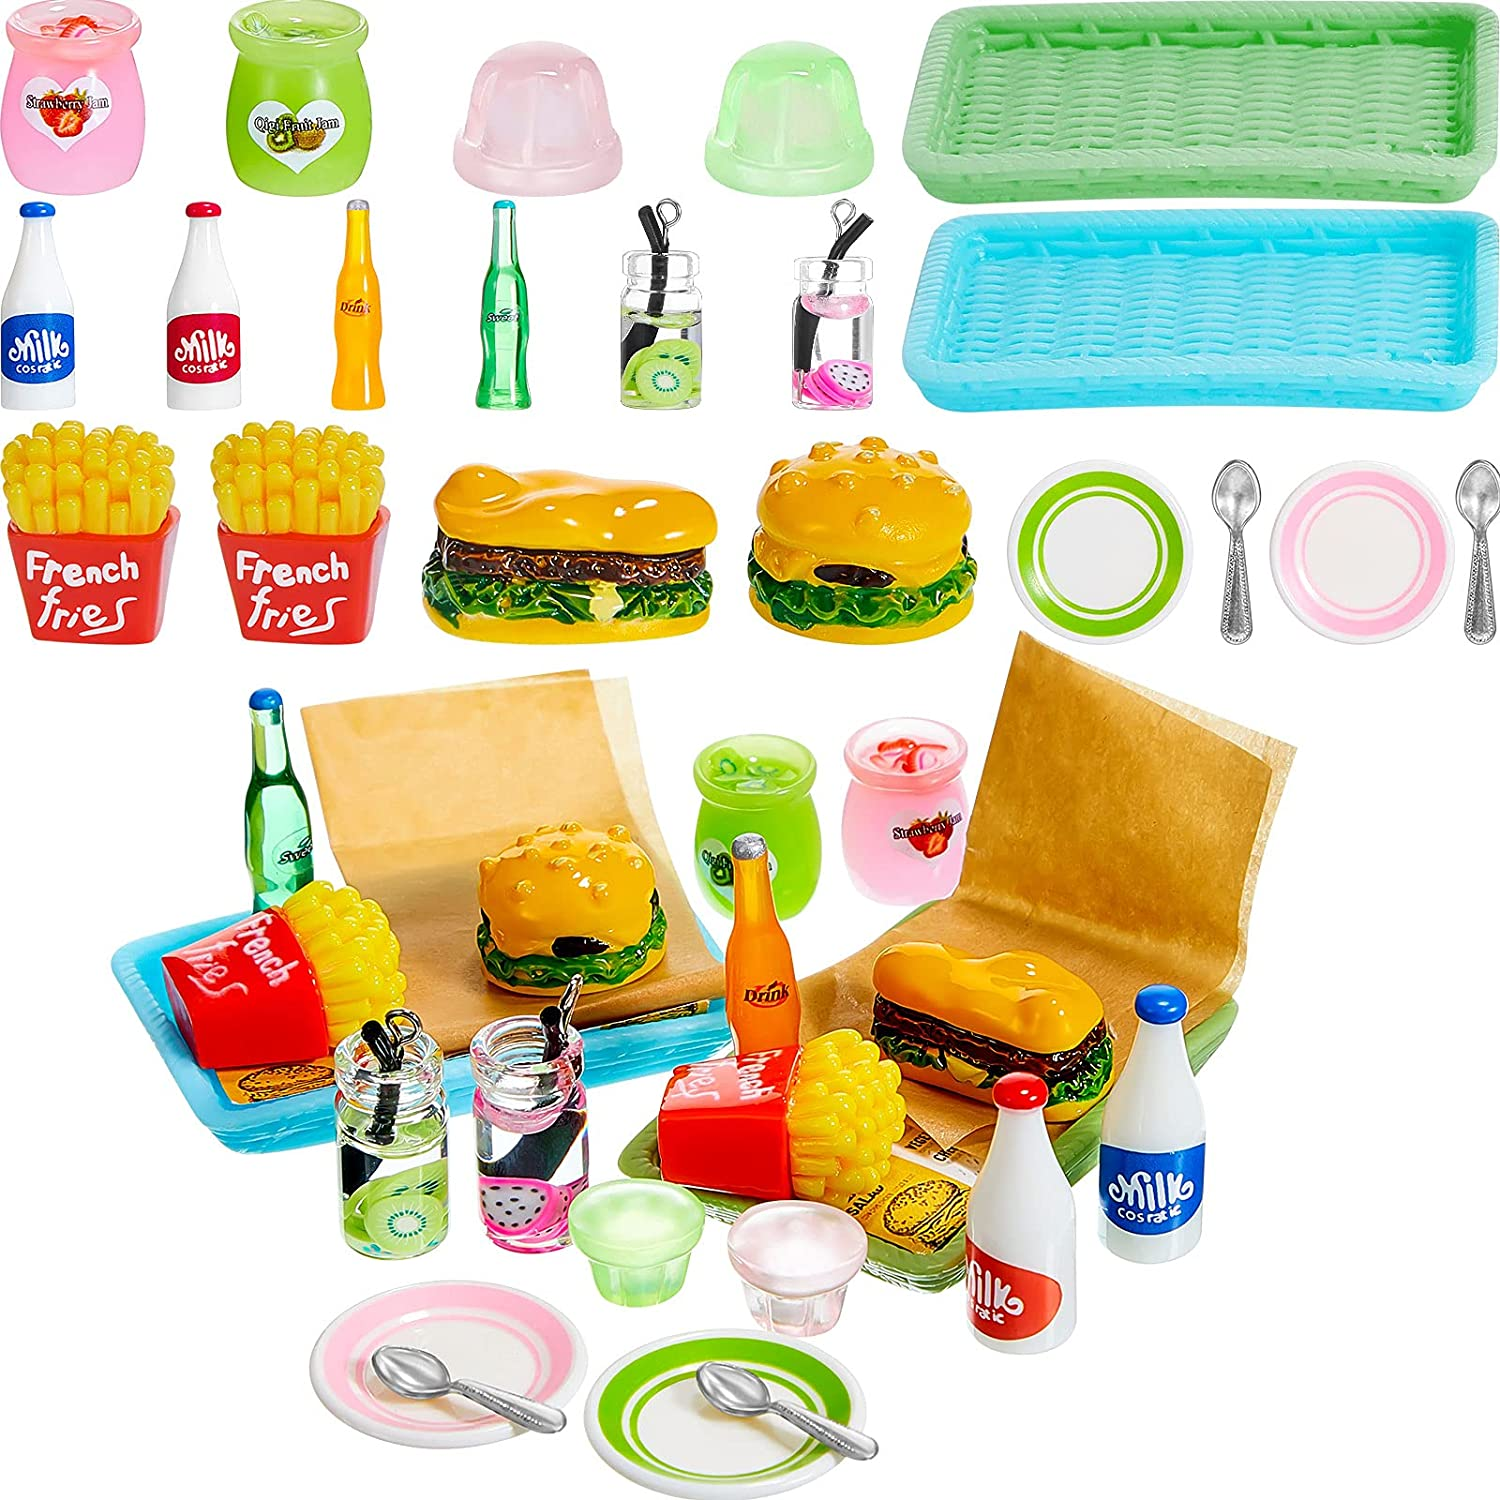 8 Pieces Miniature Food Toy Fast Food Play Set Hamburger Fries Soda Pudding Milk Juice Pretend Food Doll Food Kitchen Accessory Toy for Pretend Play Food Toys Party Accessory Bar Restaurant Decor